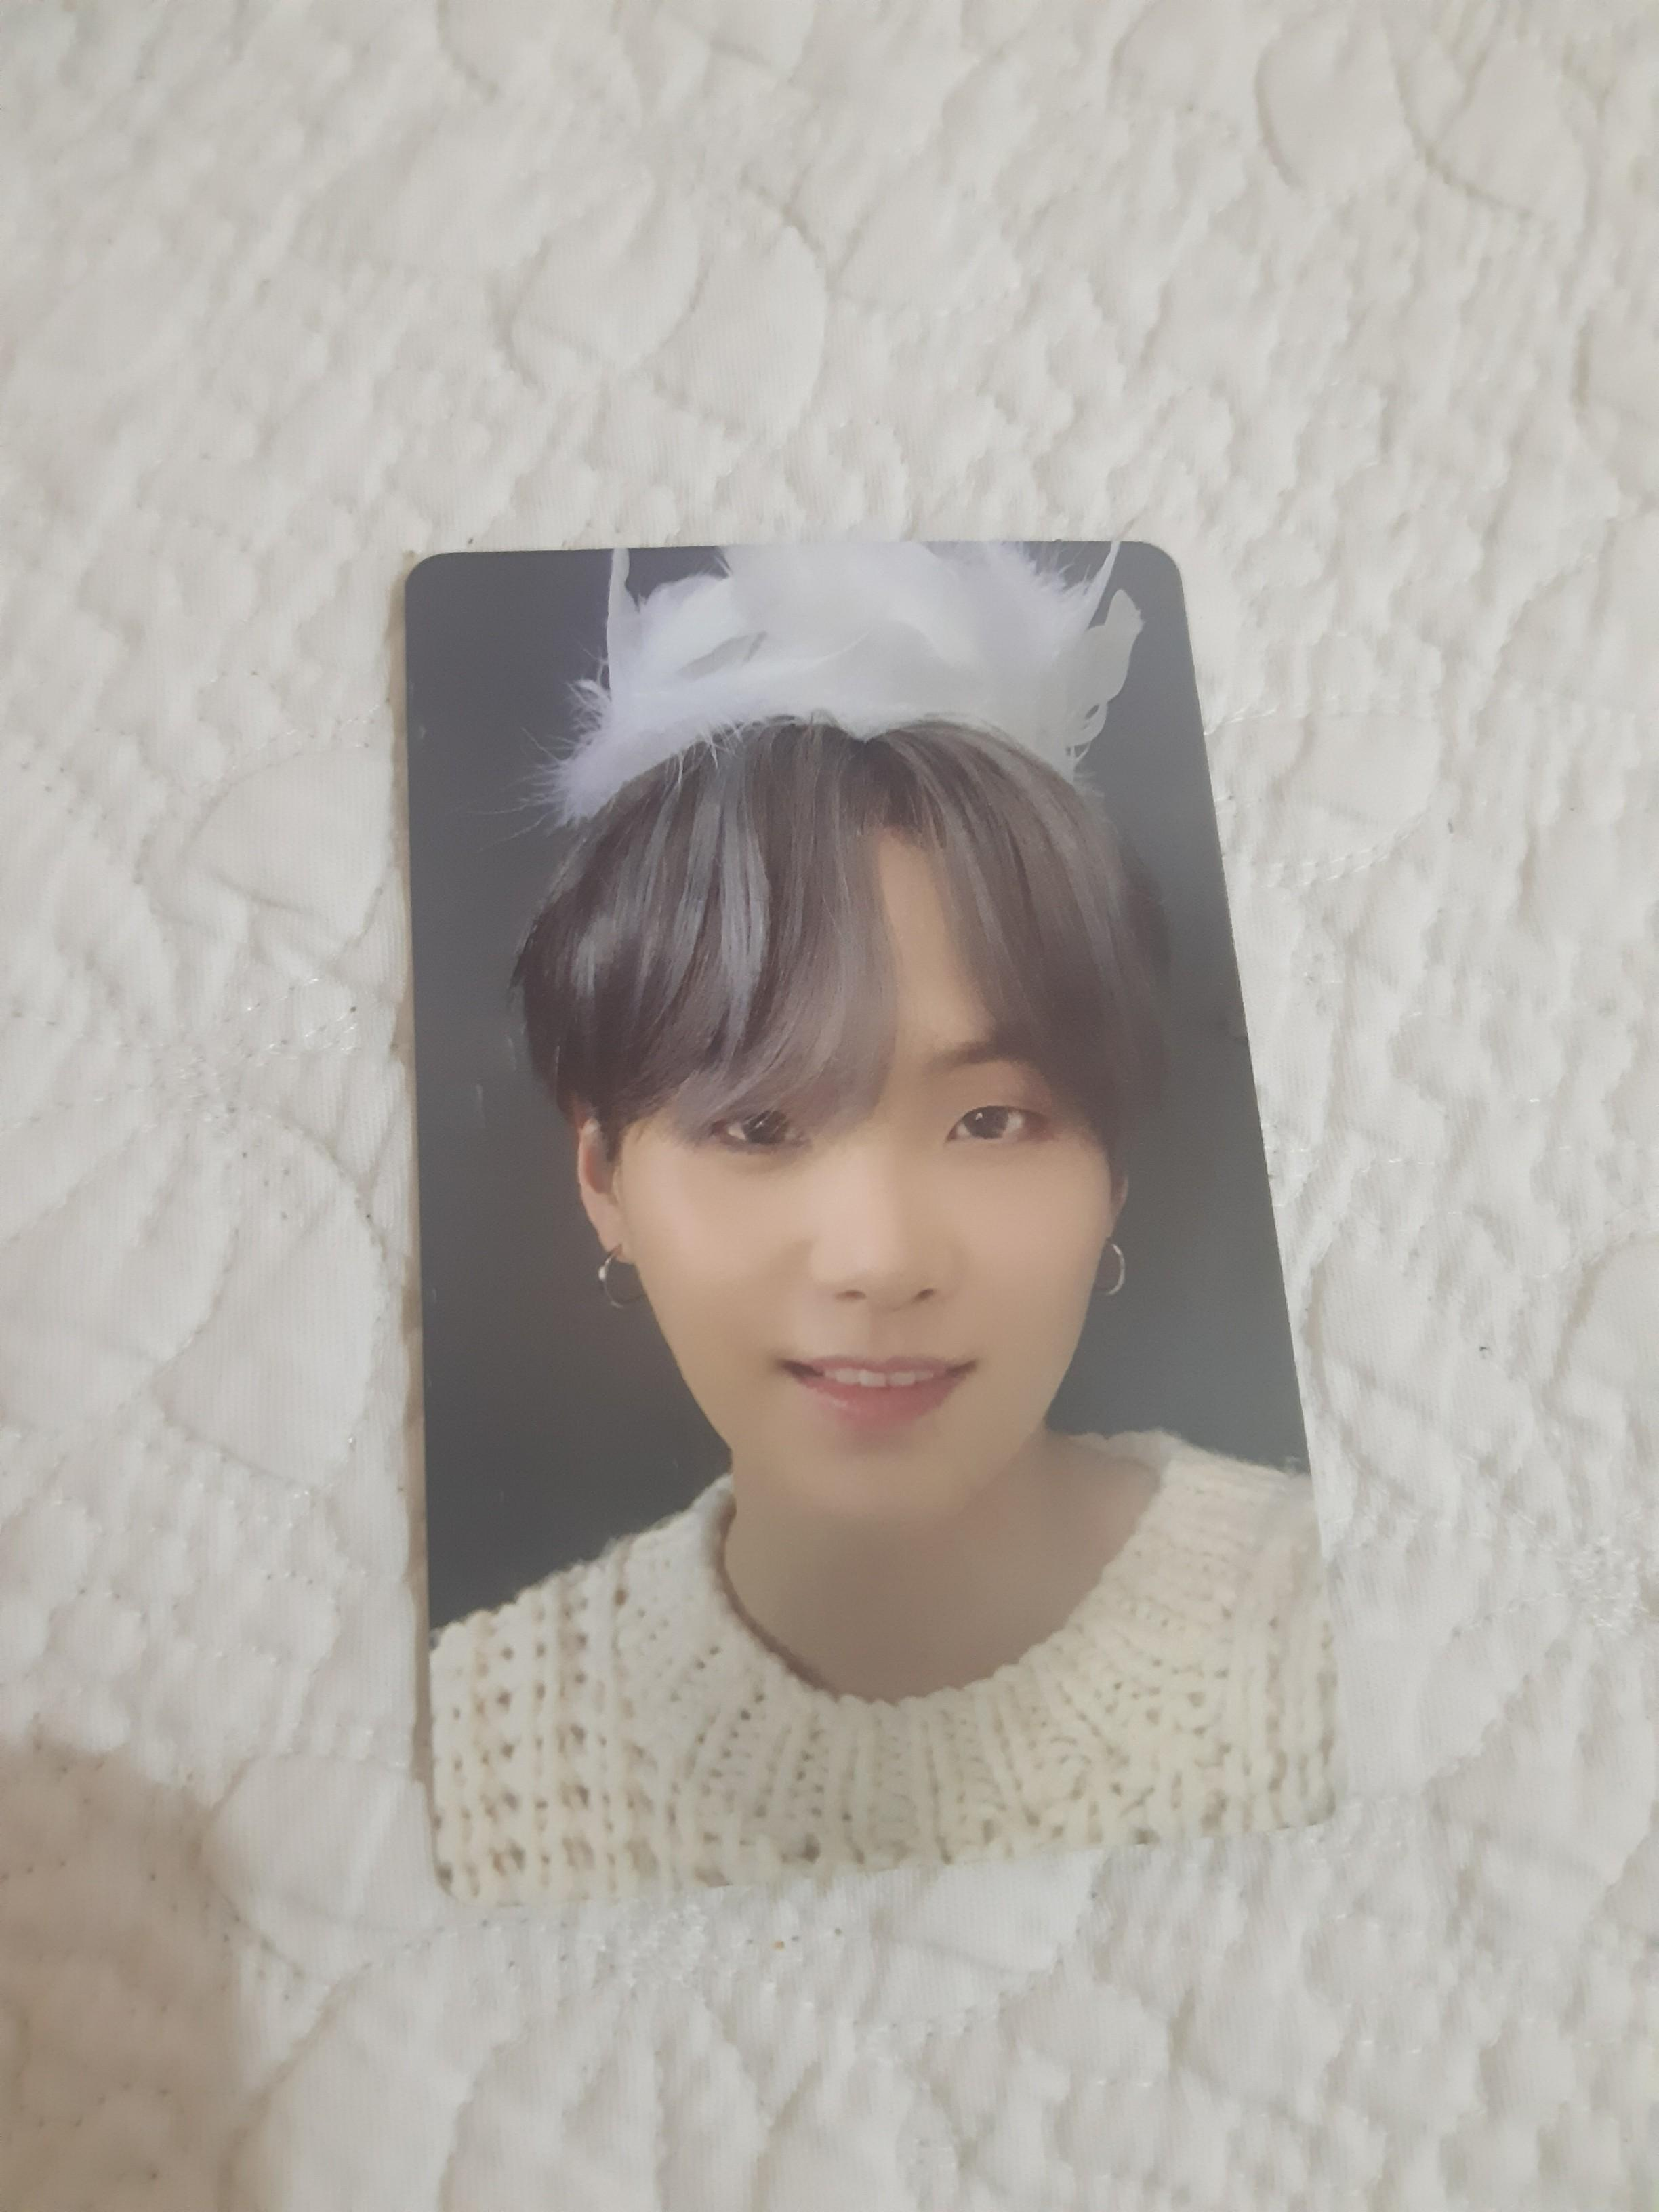 [WTT/WTS] Suga Version 1 to Taehyung Ver 1/3/4 Map of The Soul 7